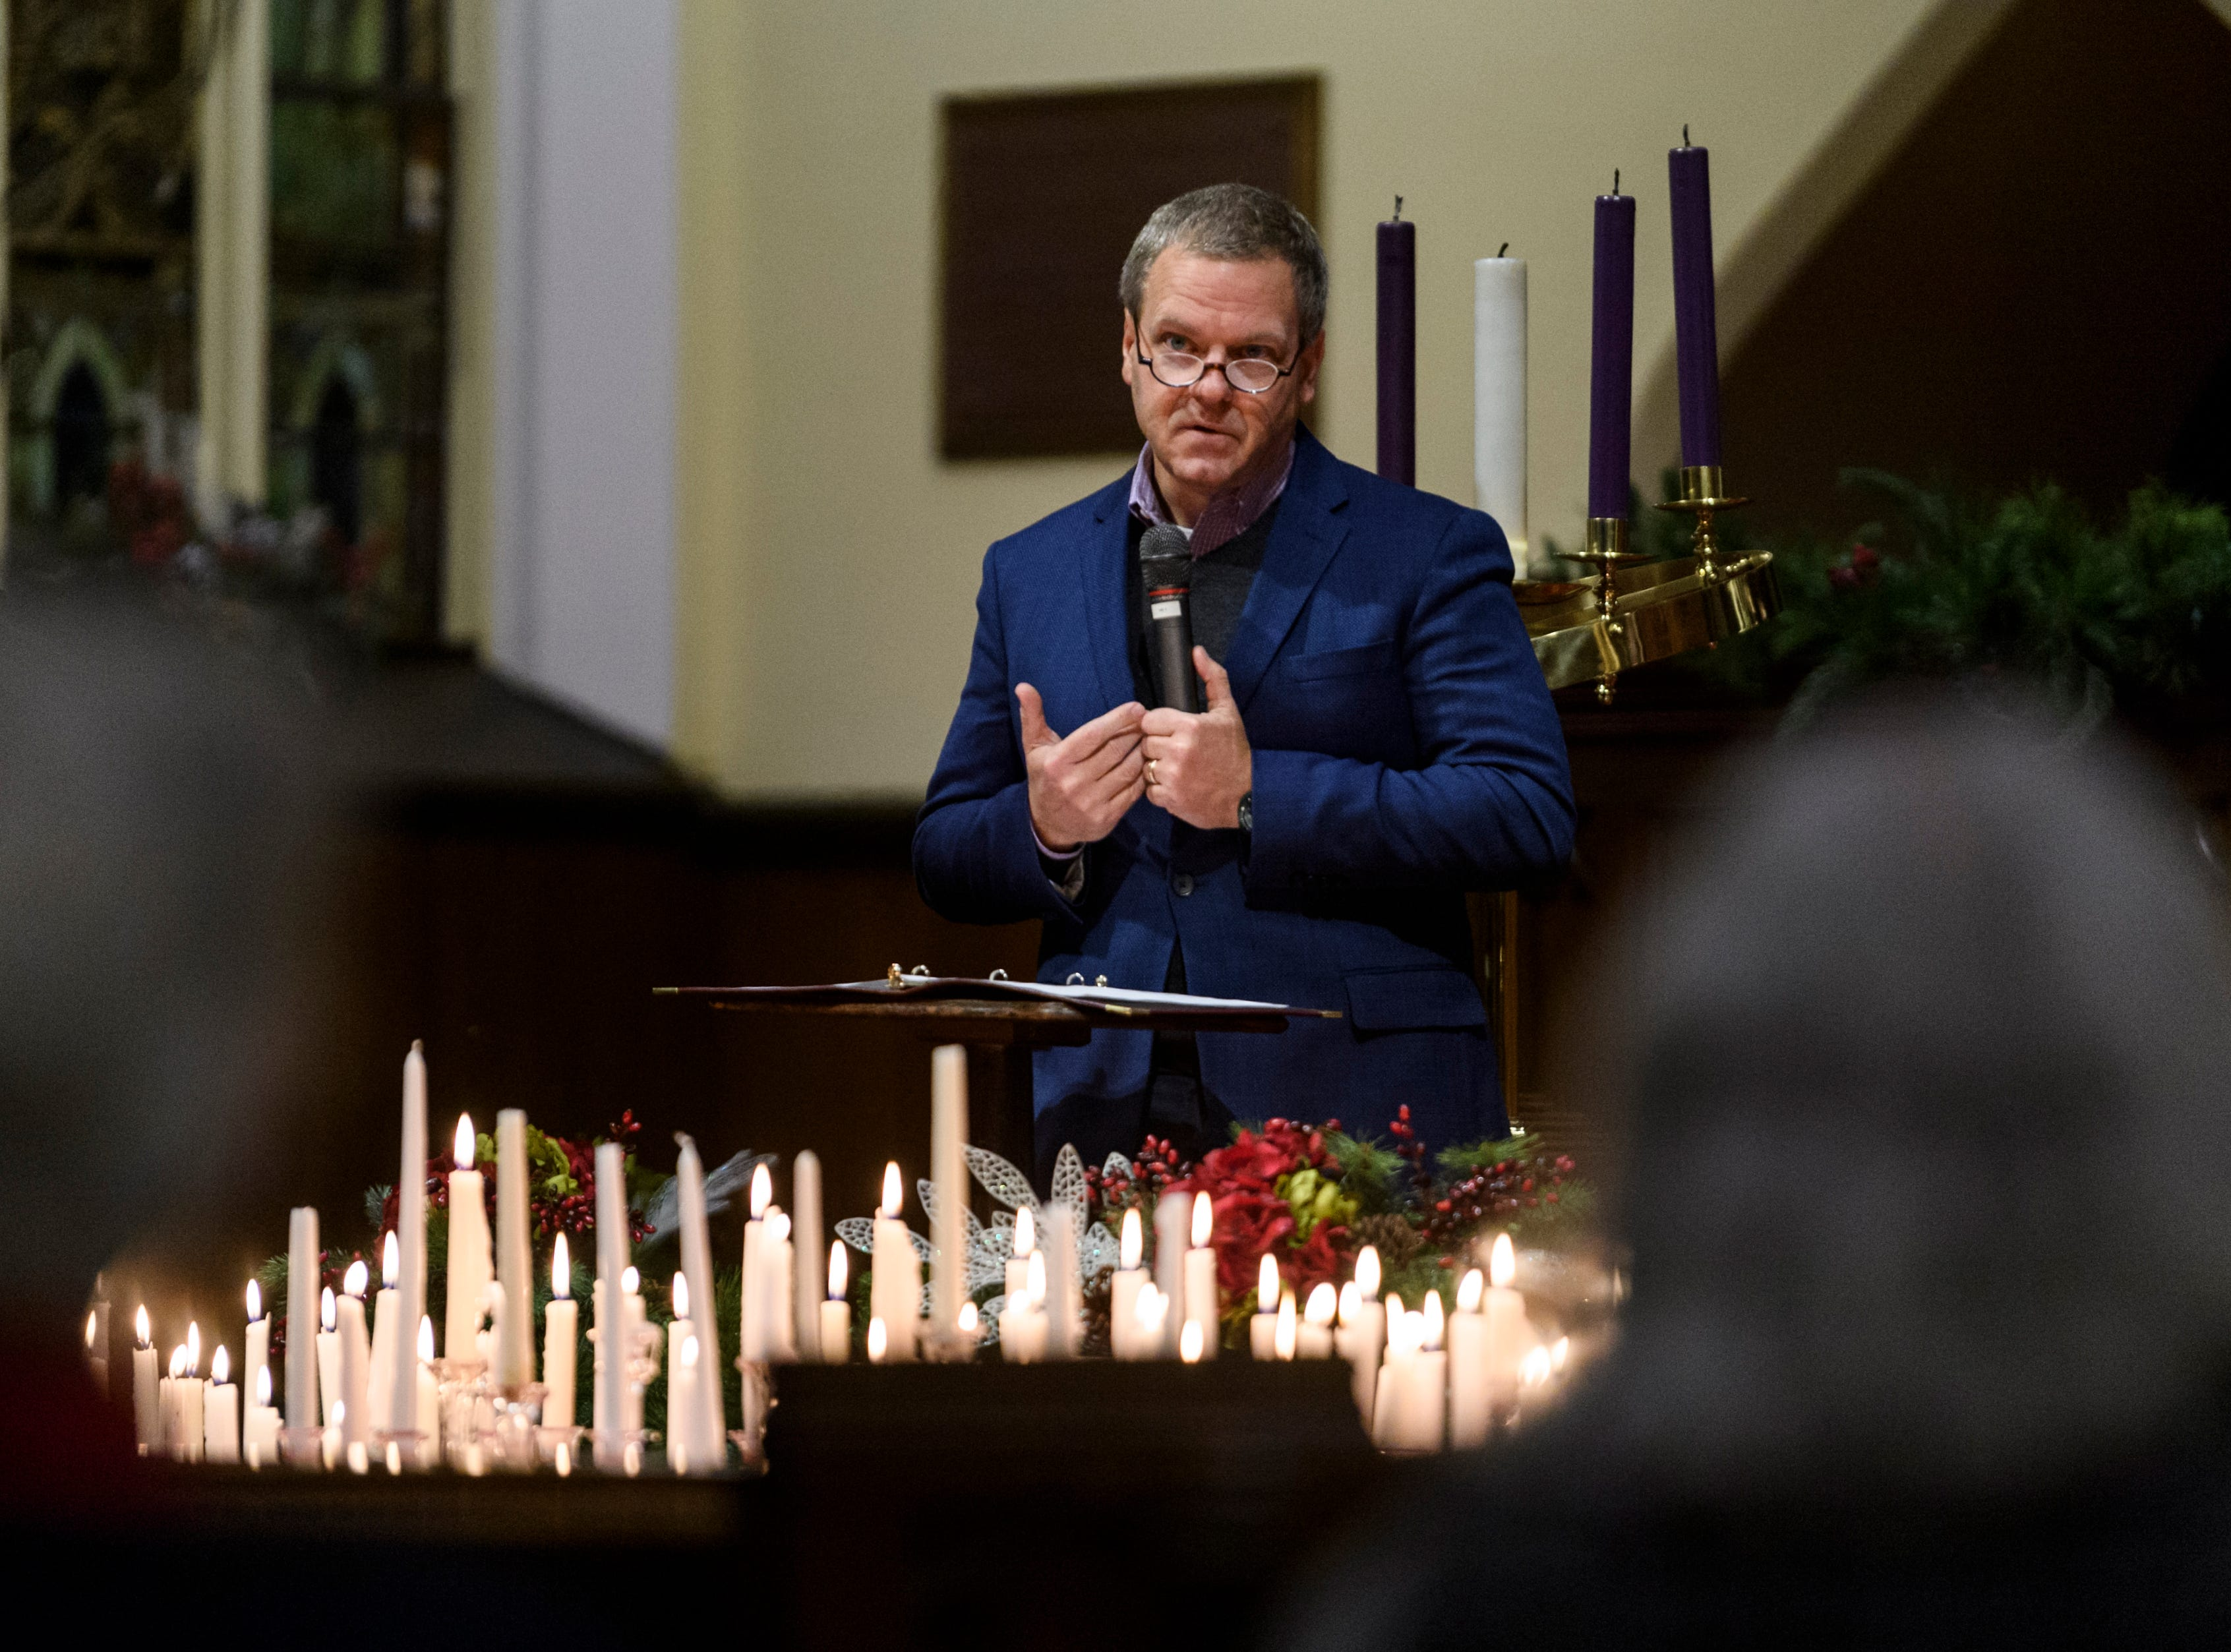 Rev. Scott Cassell of Turning Pointe United Methodist Church addresses the crowd with a spiritual message during the 18th annual Homeless Memorial service organized by Aurora, a local non-profit serving the homeless population, at Trinity United Methodist Church in Evansville, Ind., Tuesday, Dec. 11, 2018.